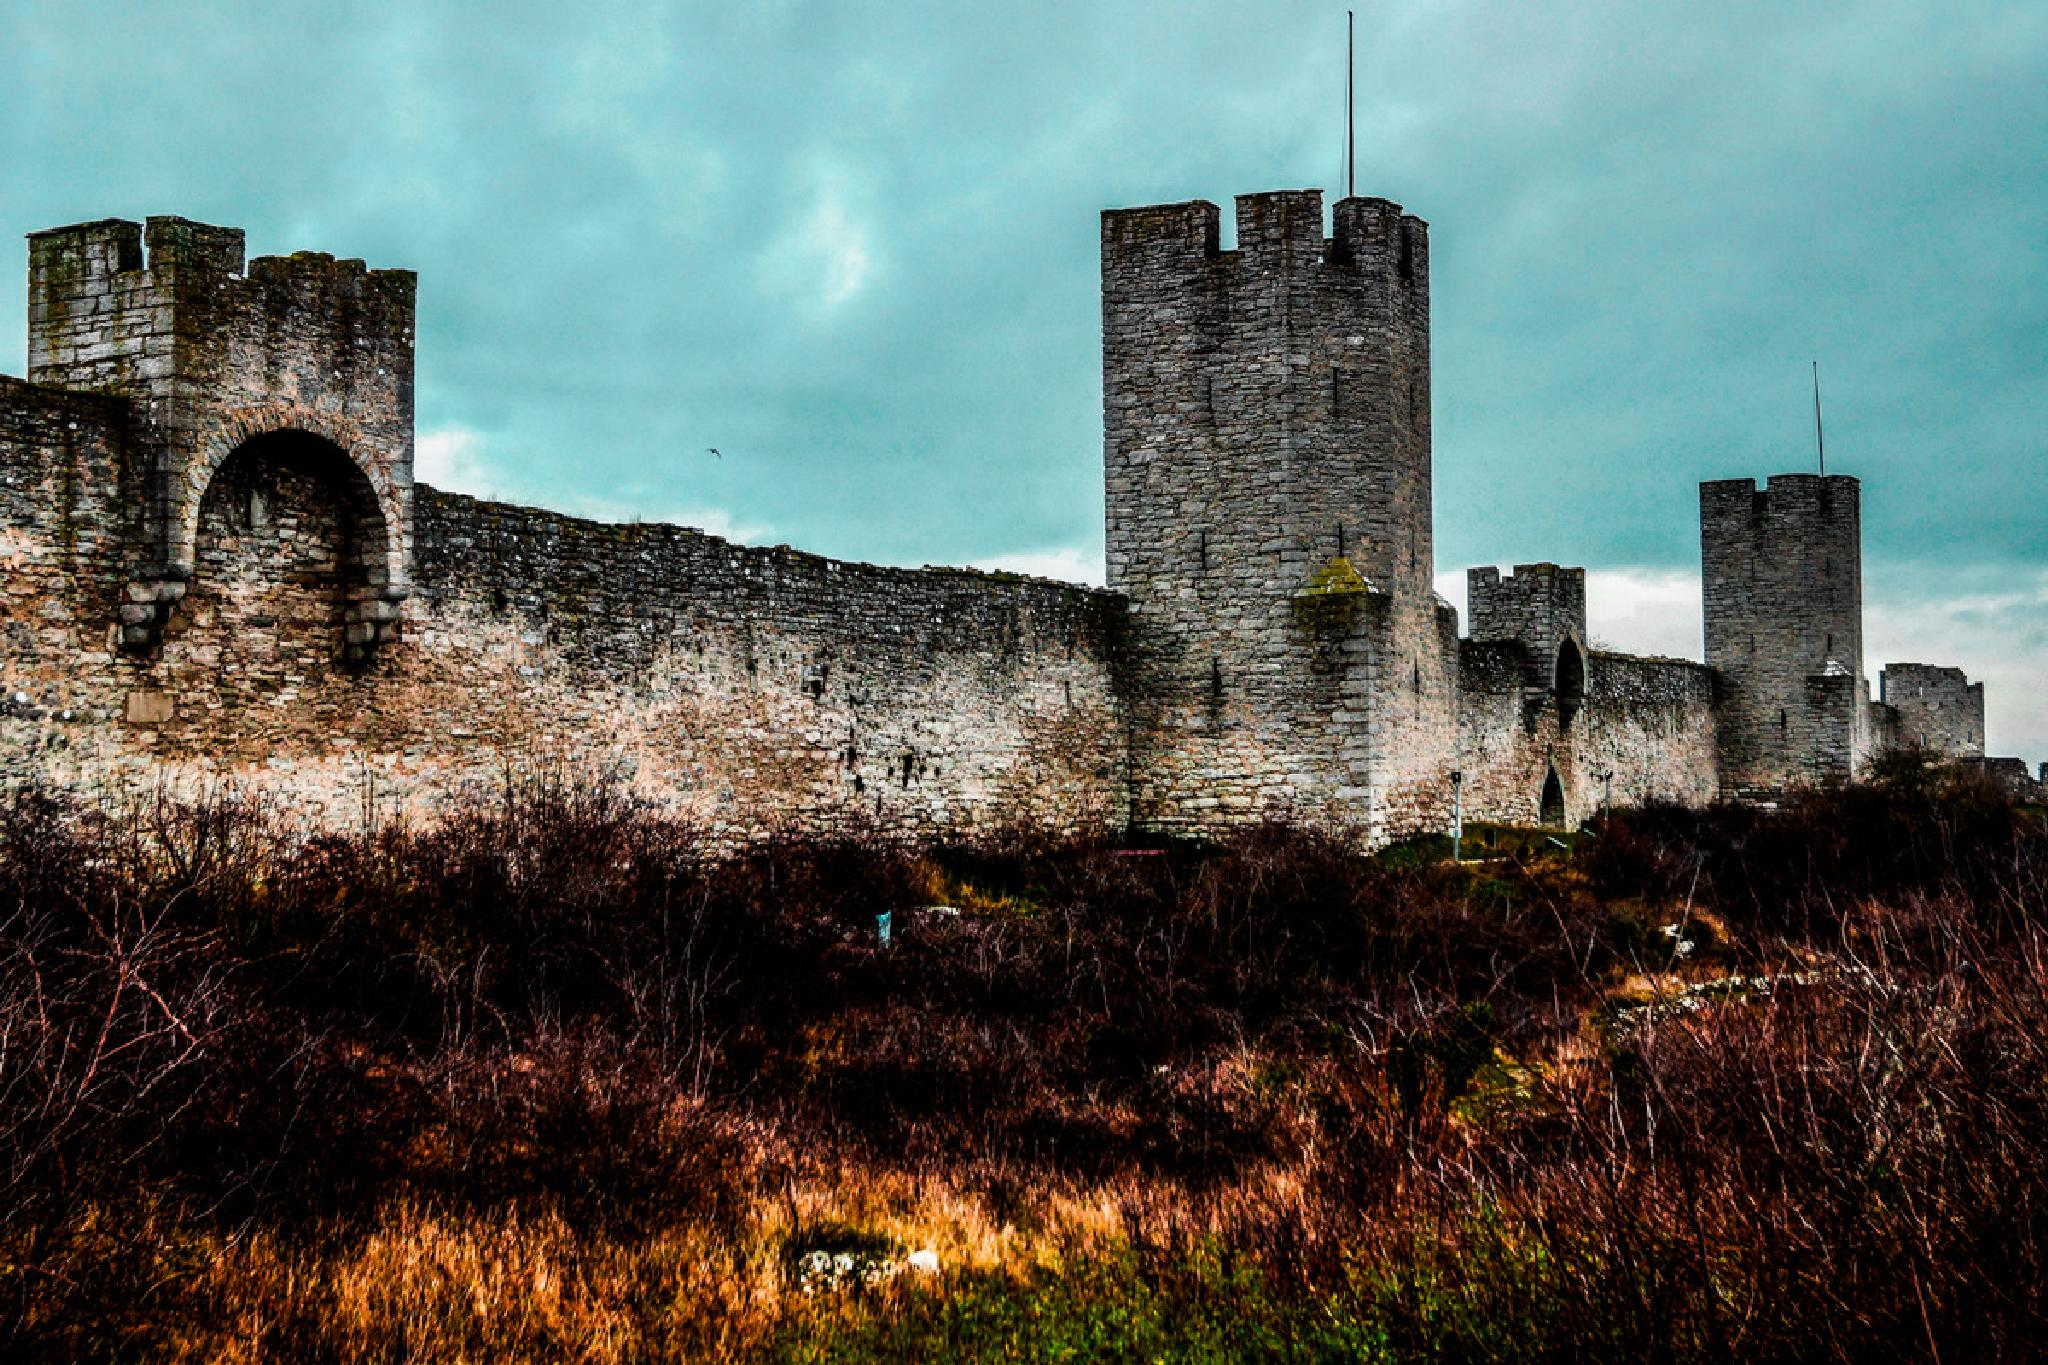 City wall around Visby by Jane.lindbladh